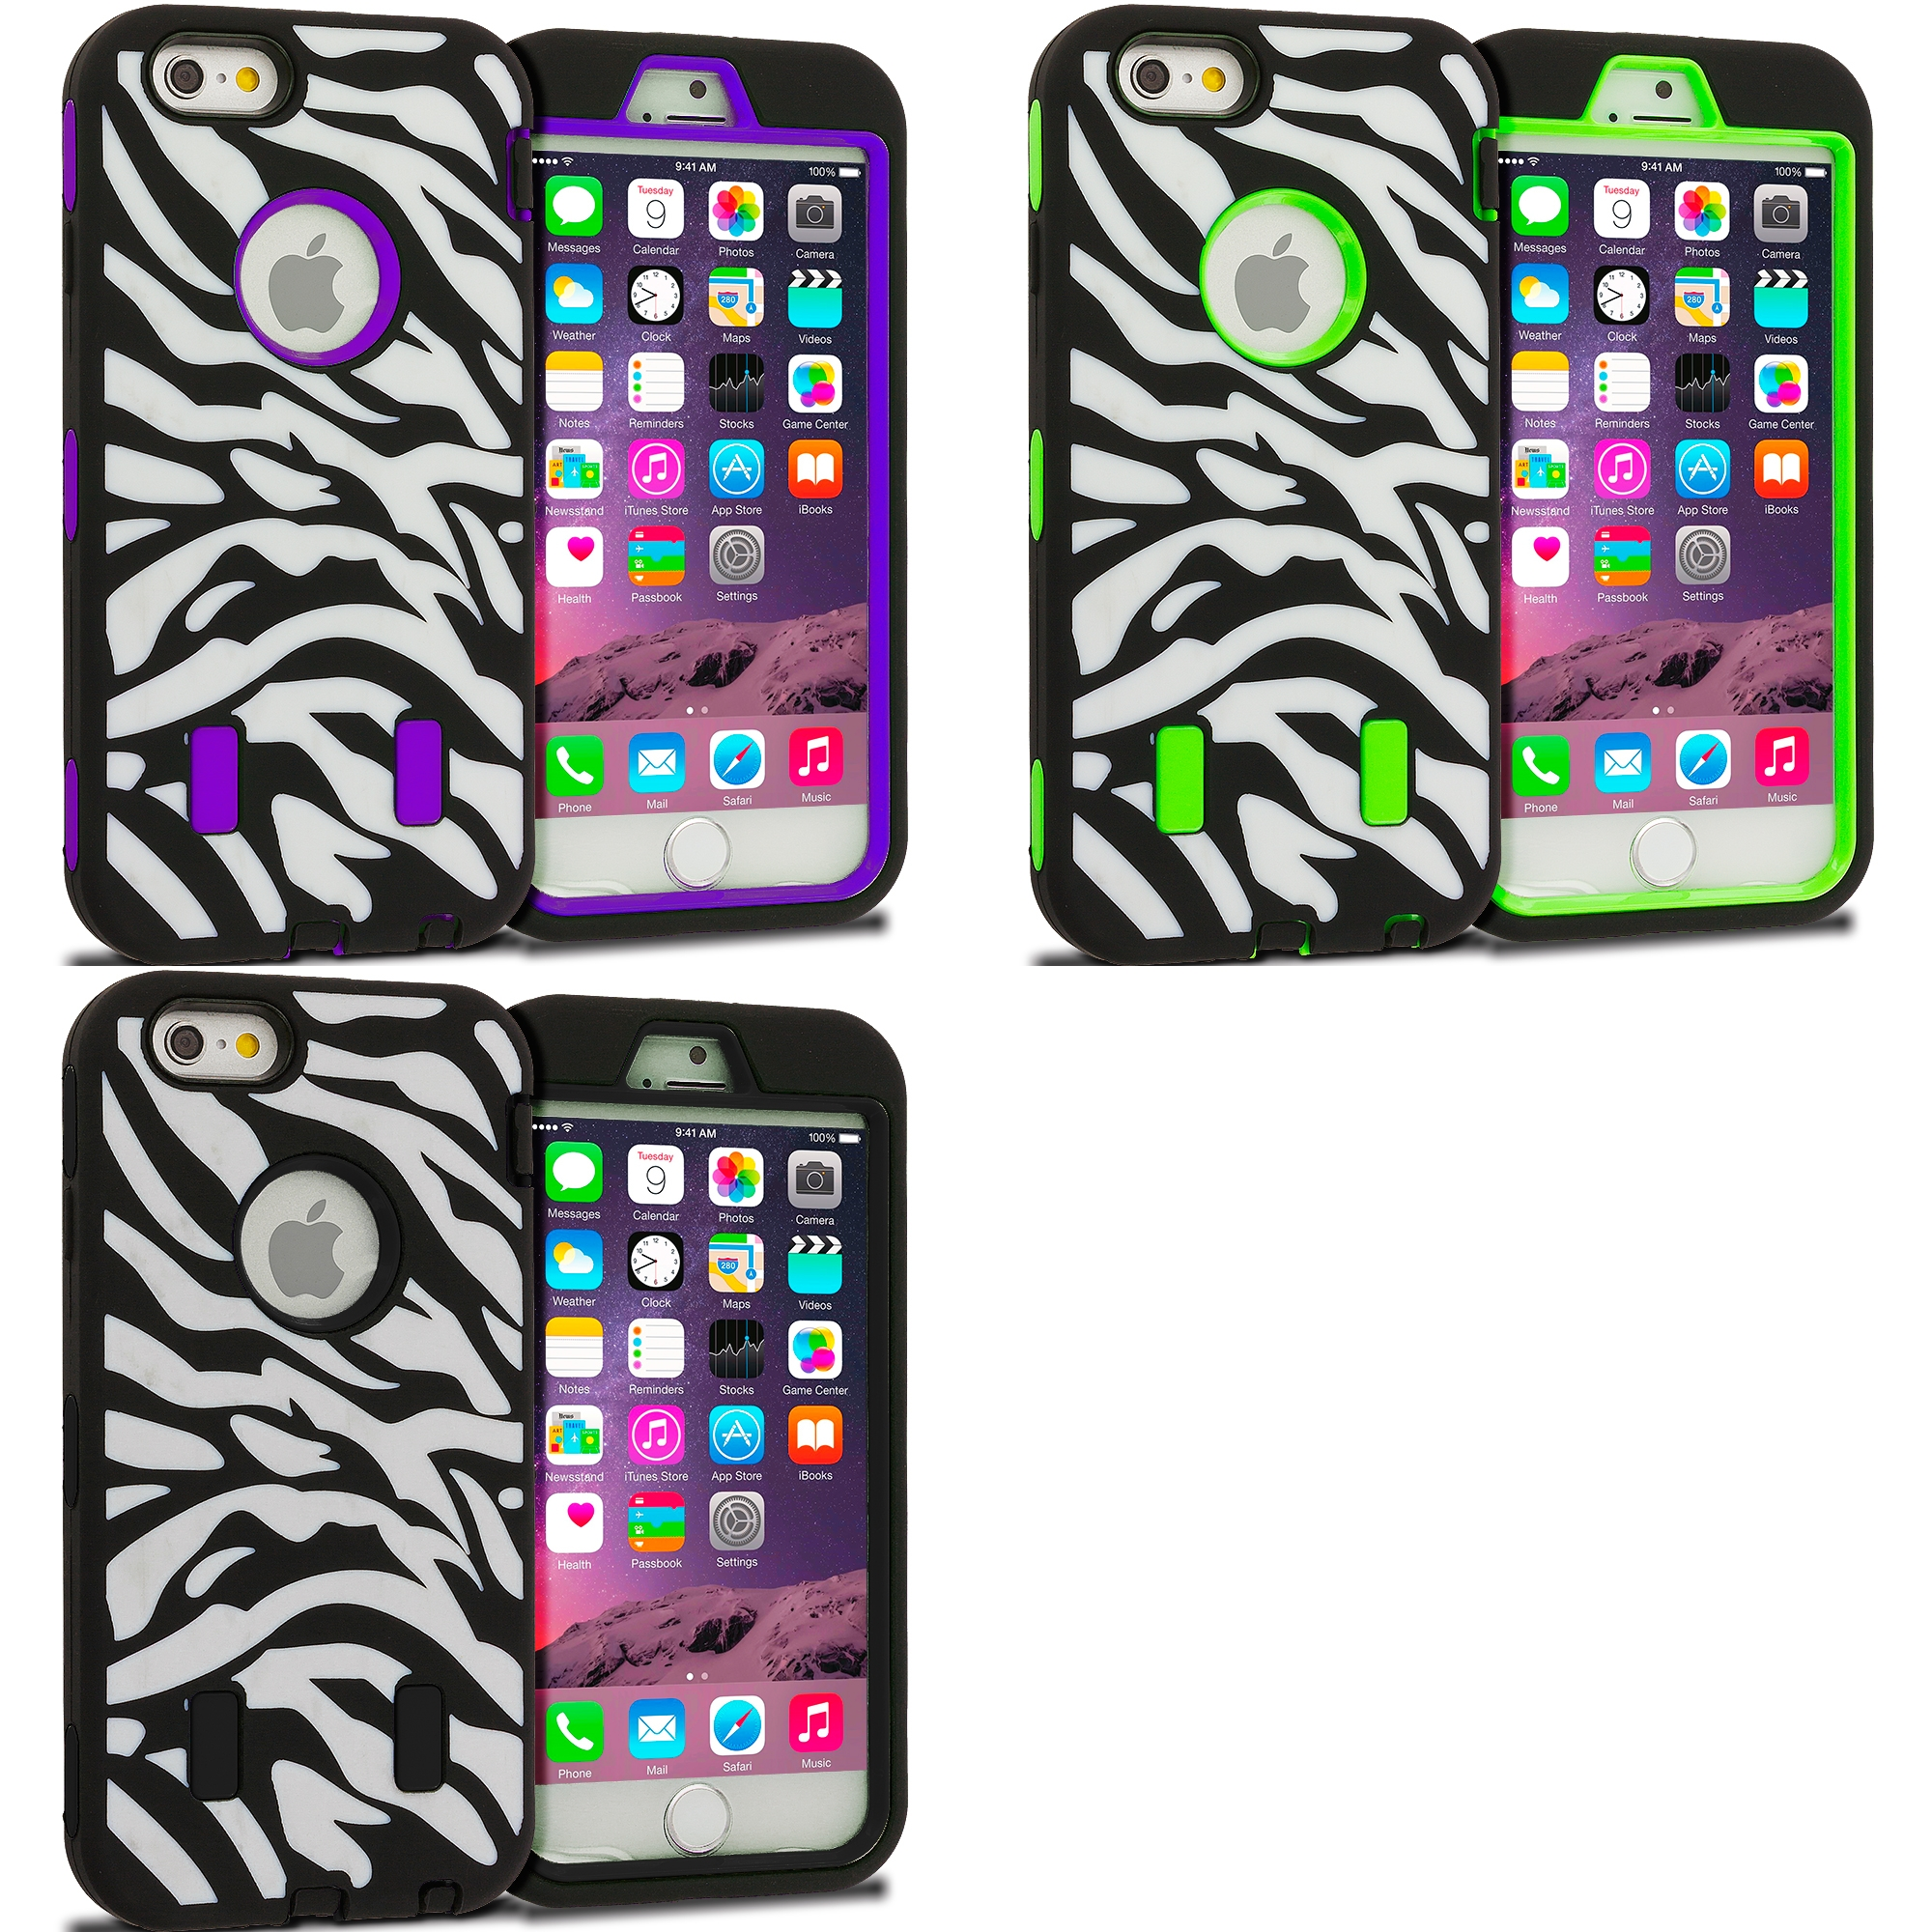 Apple iPhone 6 Plus 6S Plus (5.5) 3 in 1 Combo Bundle Pack - Zebra Hybrid Deluxe Hard/Soft Case Cover